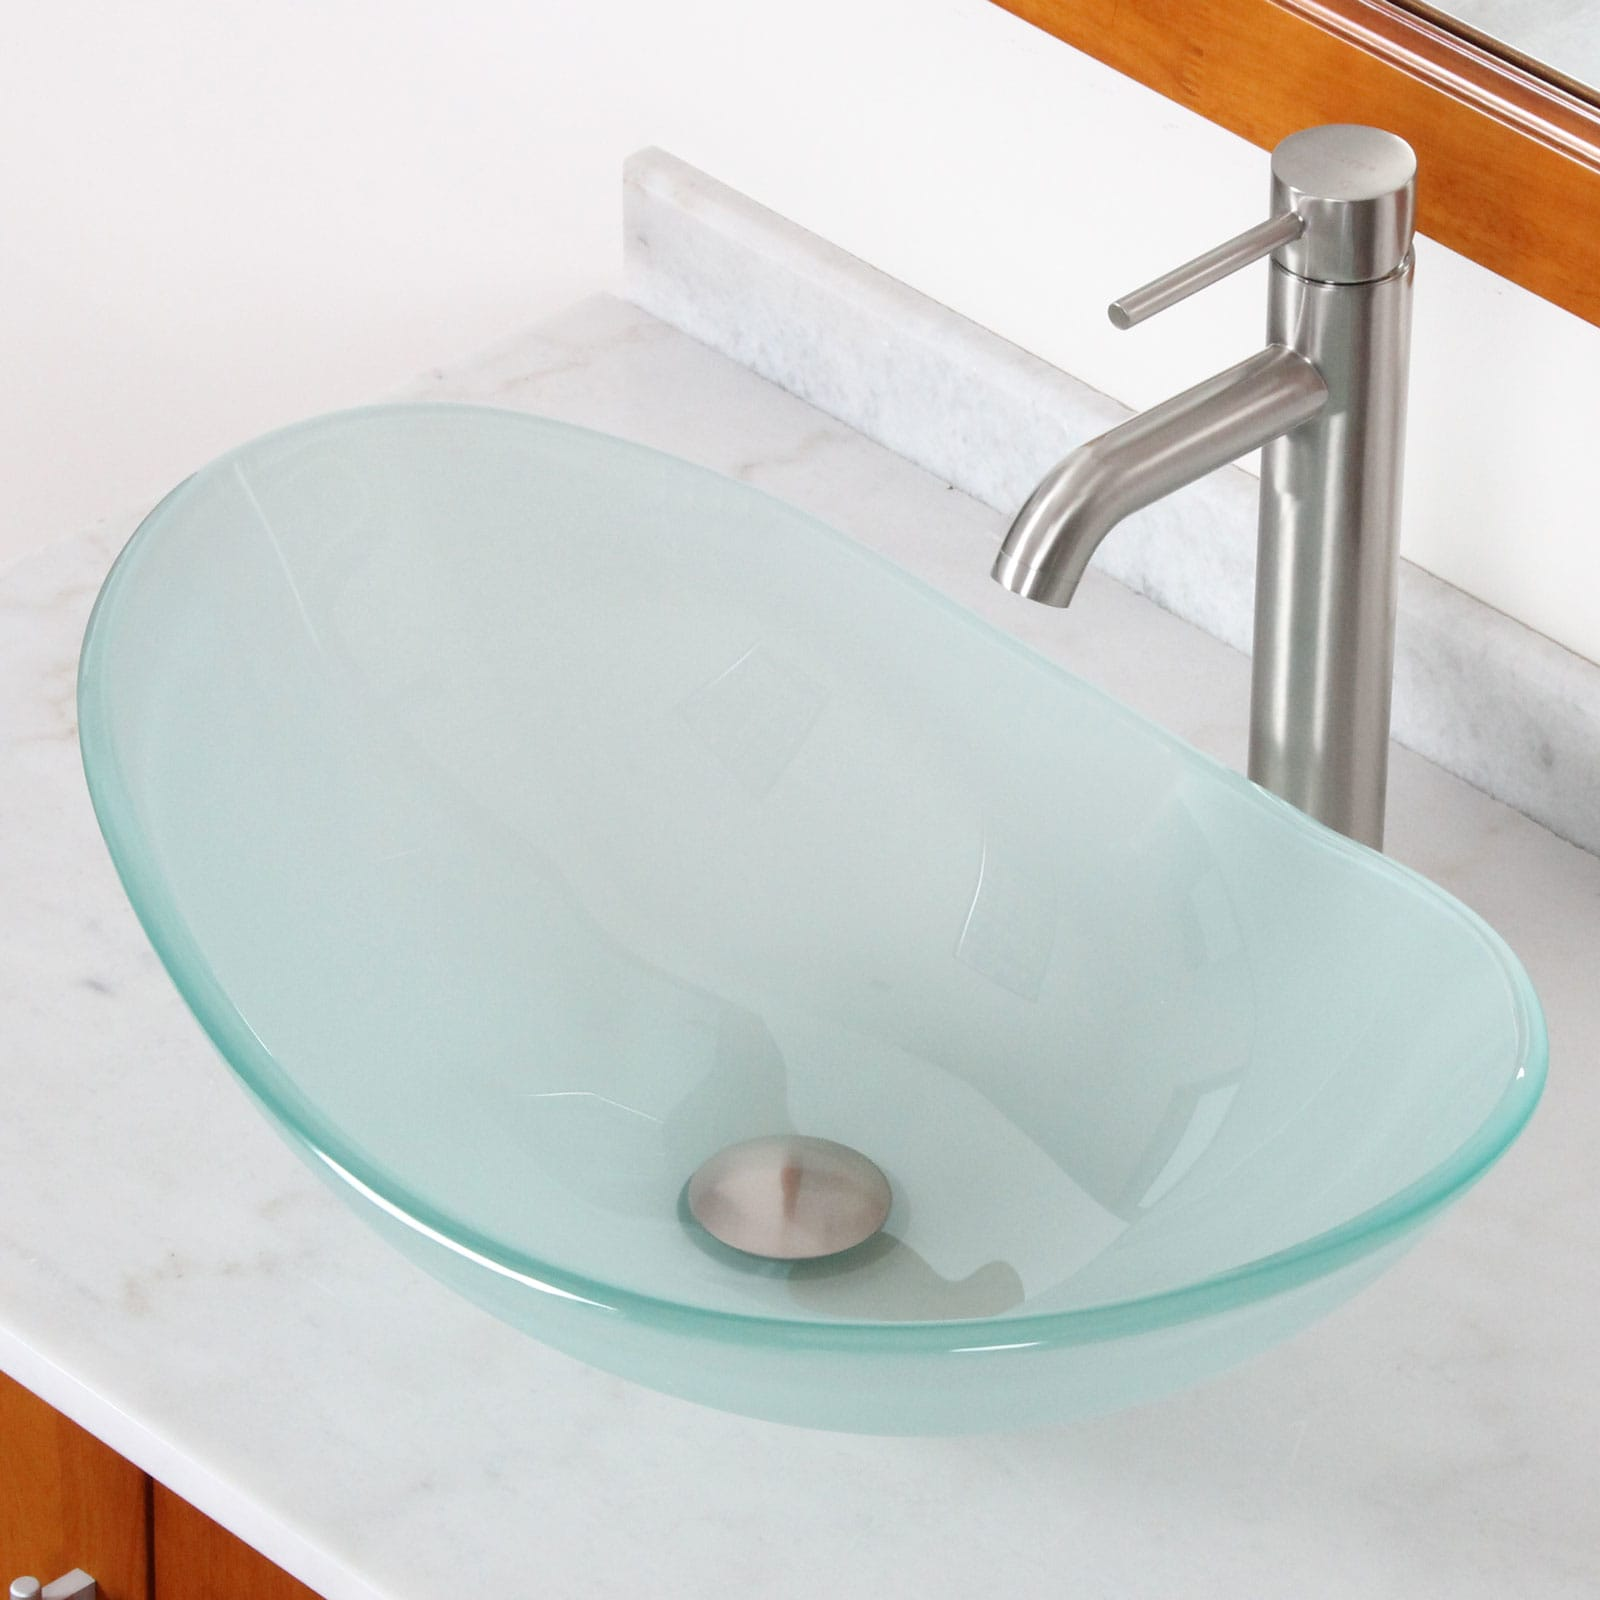 Elite Gd33f371023bn Tempered Bathroom Gl Vessel Sink W Unique Oval Shape With Faucet Combo